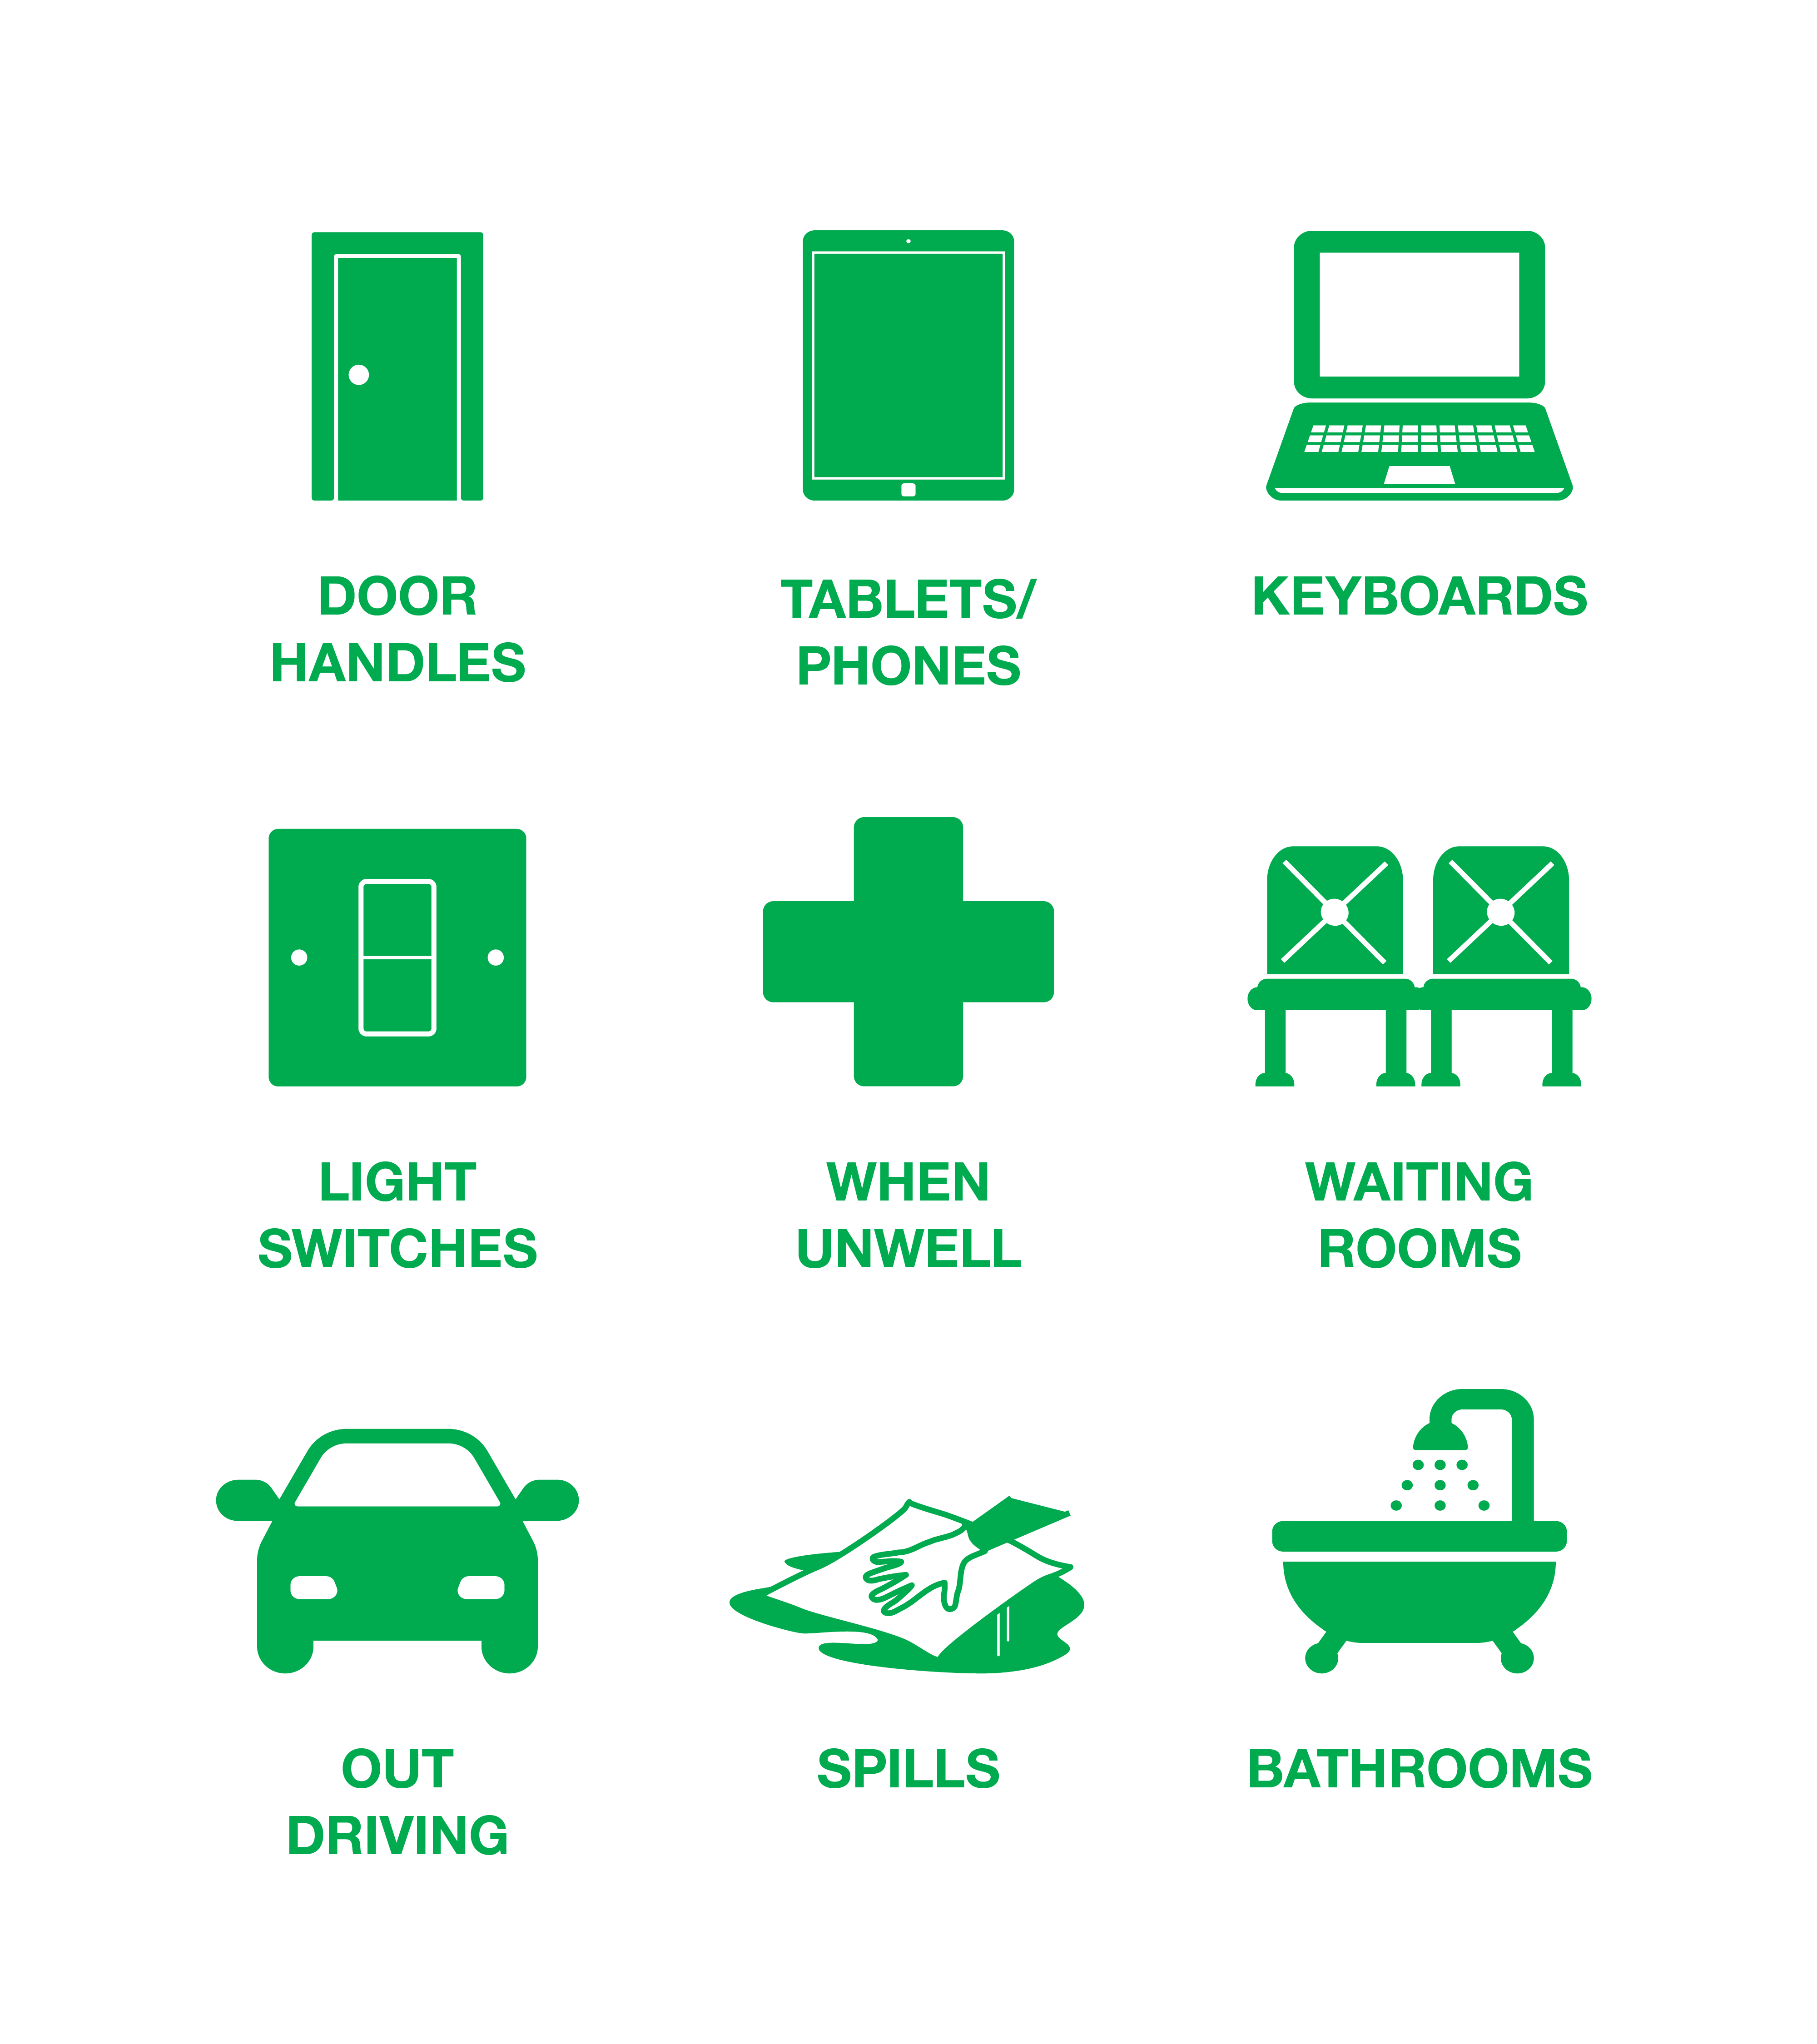 Surfaces and Equipment Icons